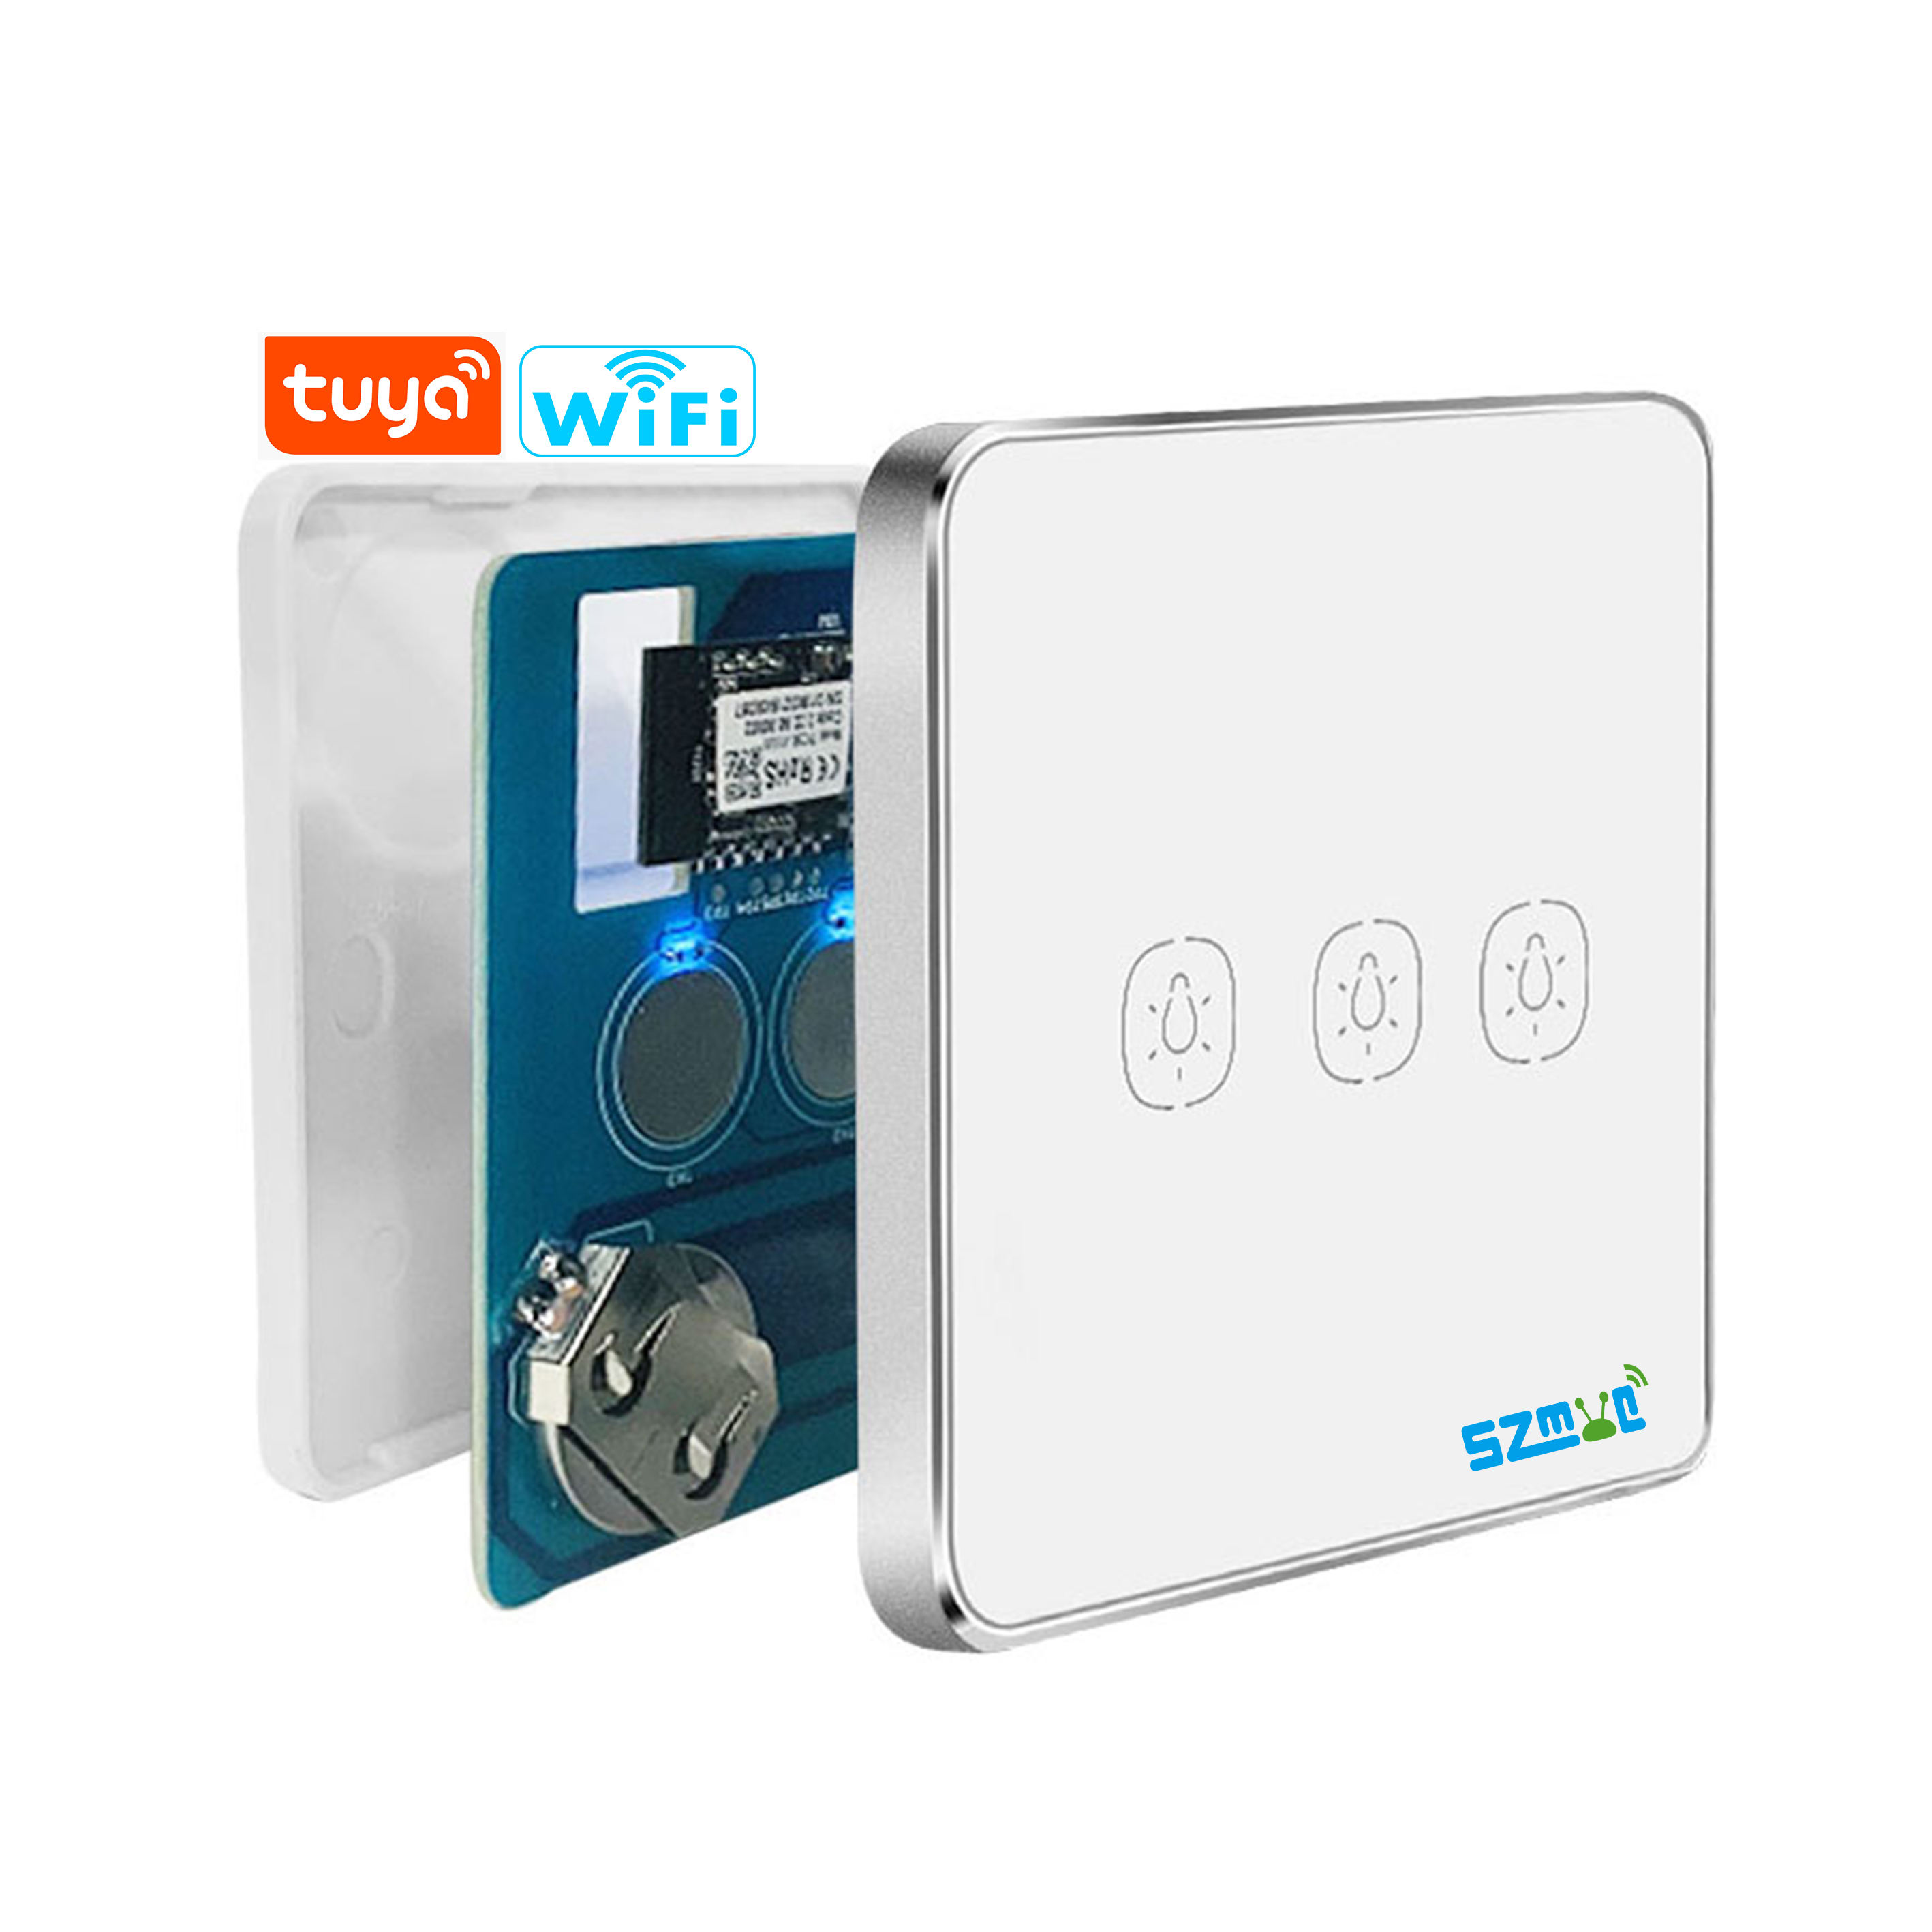 WIFI+Zigbee Smart Home Touch Electrical smart scene switch 100% succcess operation